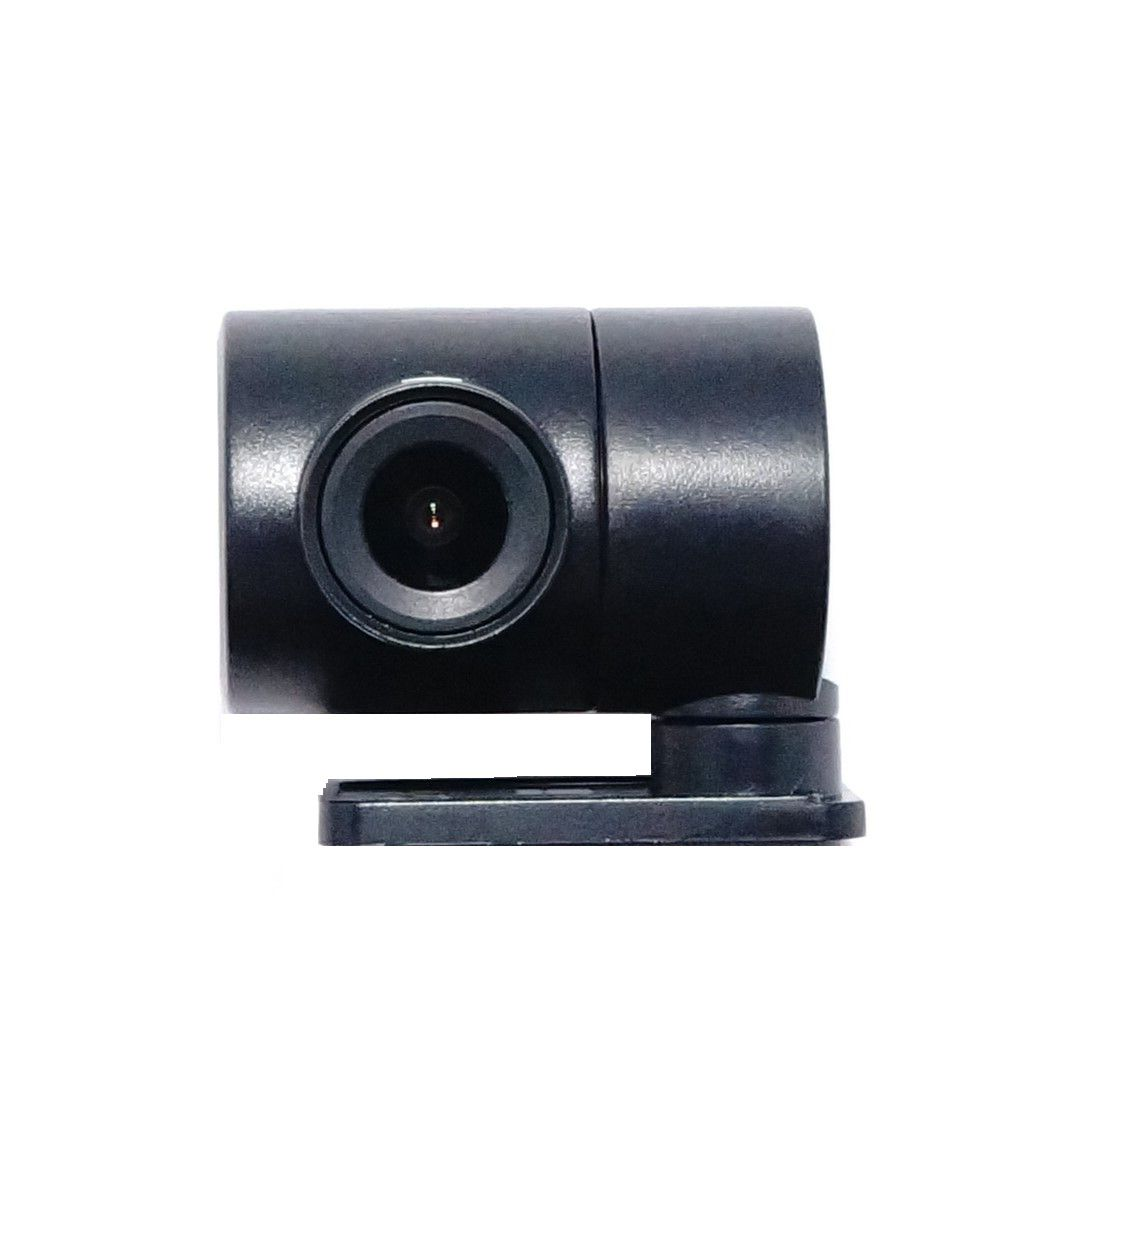 Snooper-DVR-5HD-duo-dashcam